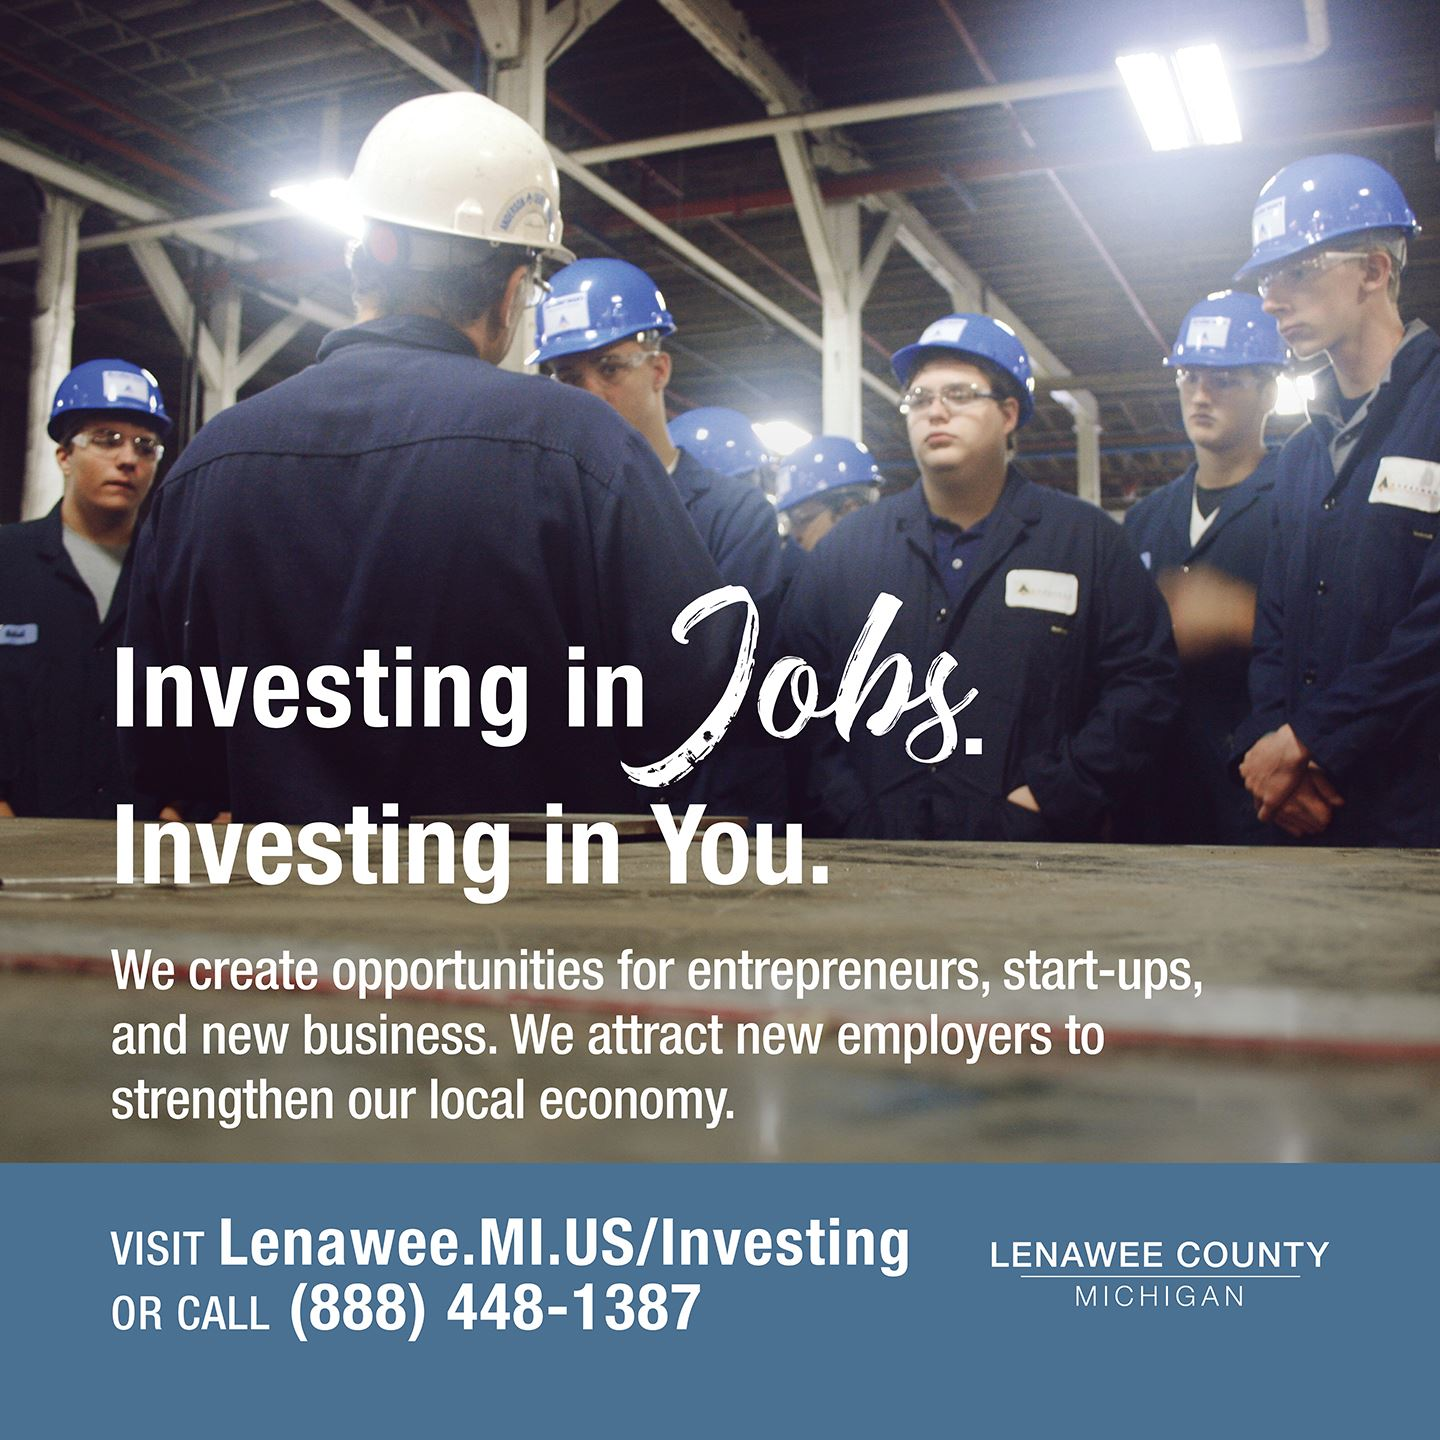 Investing in Jobs by Creating Opportunities